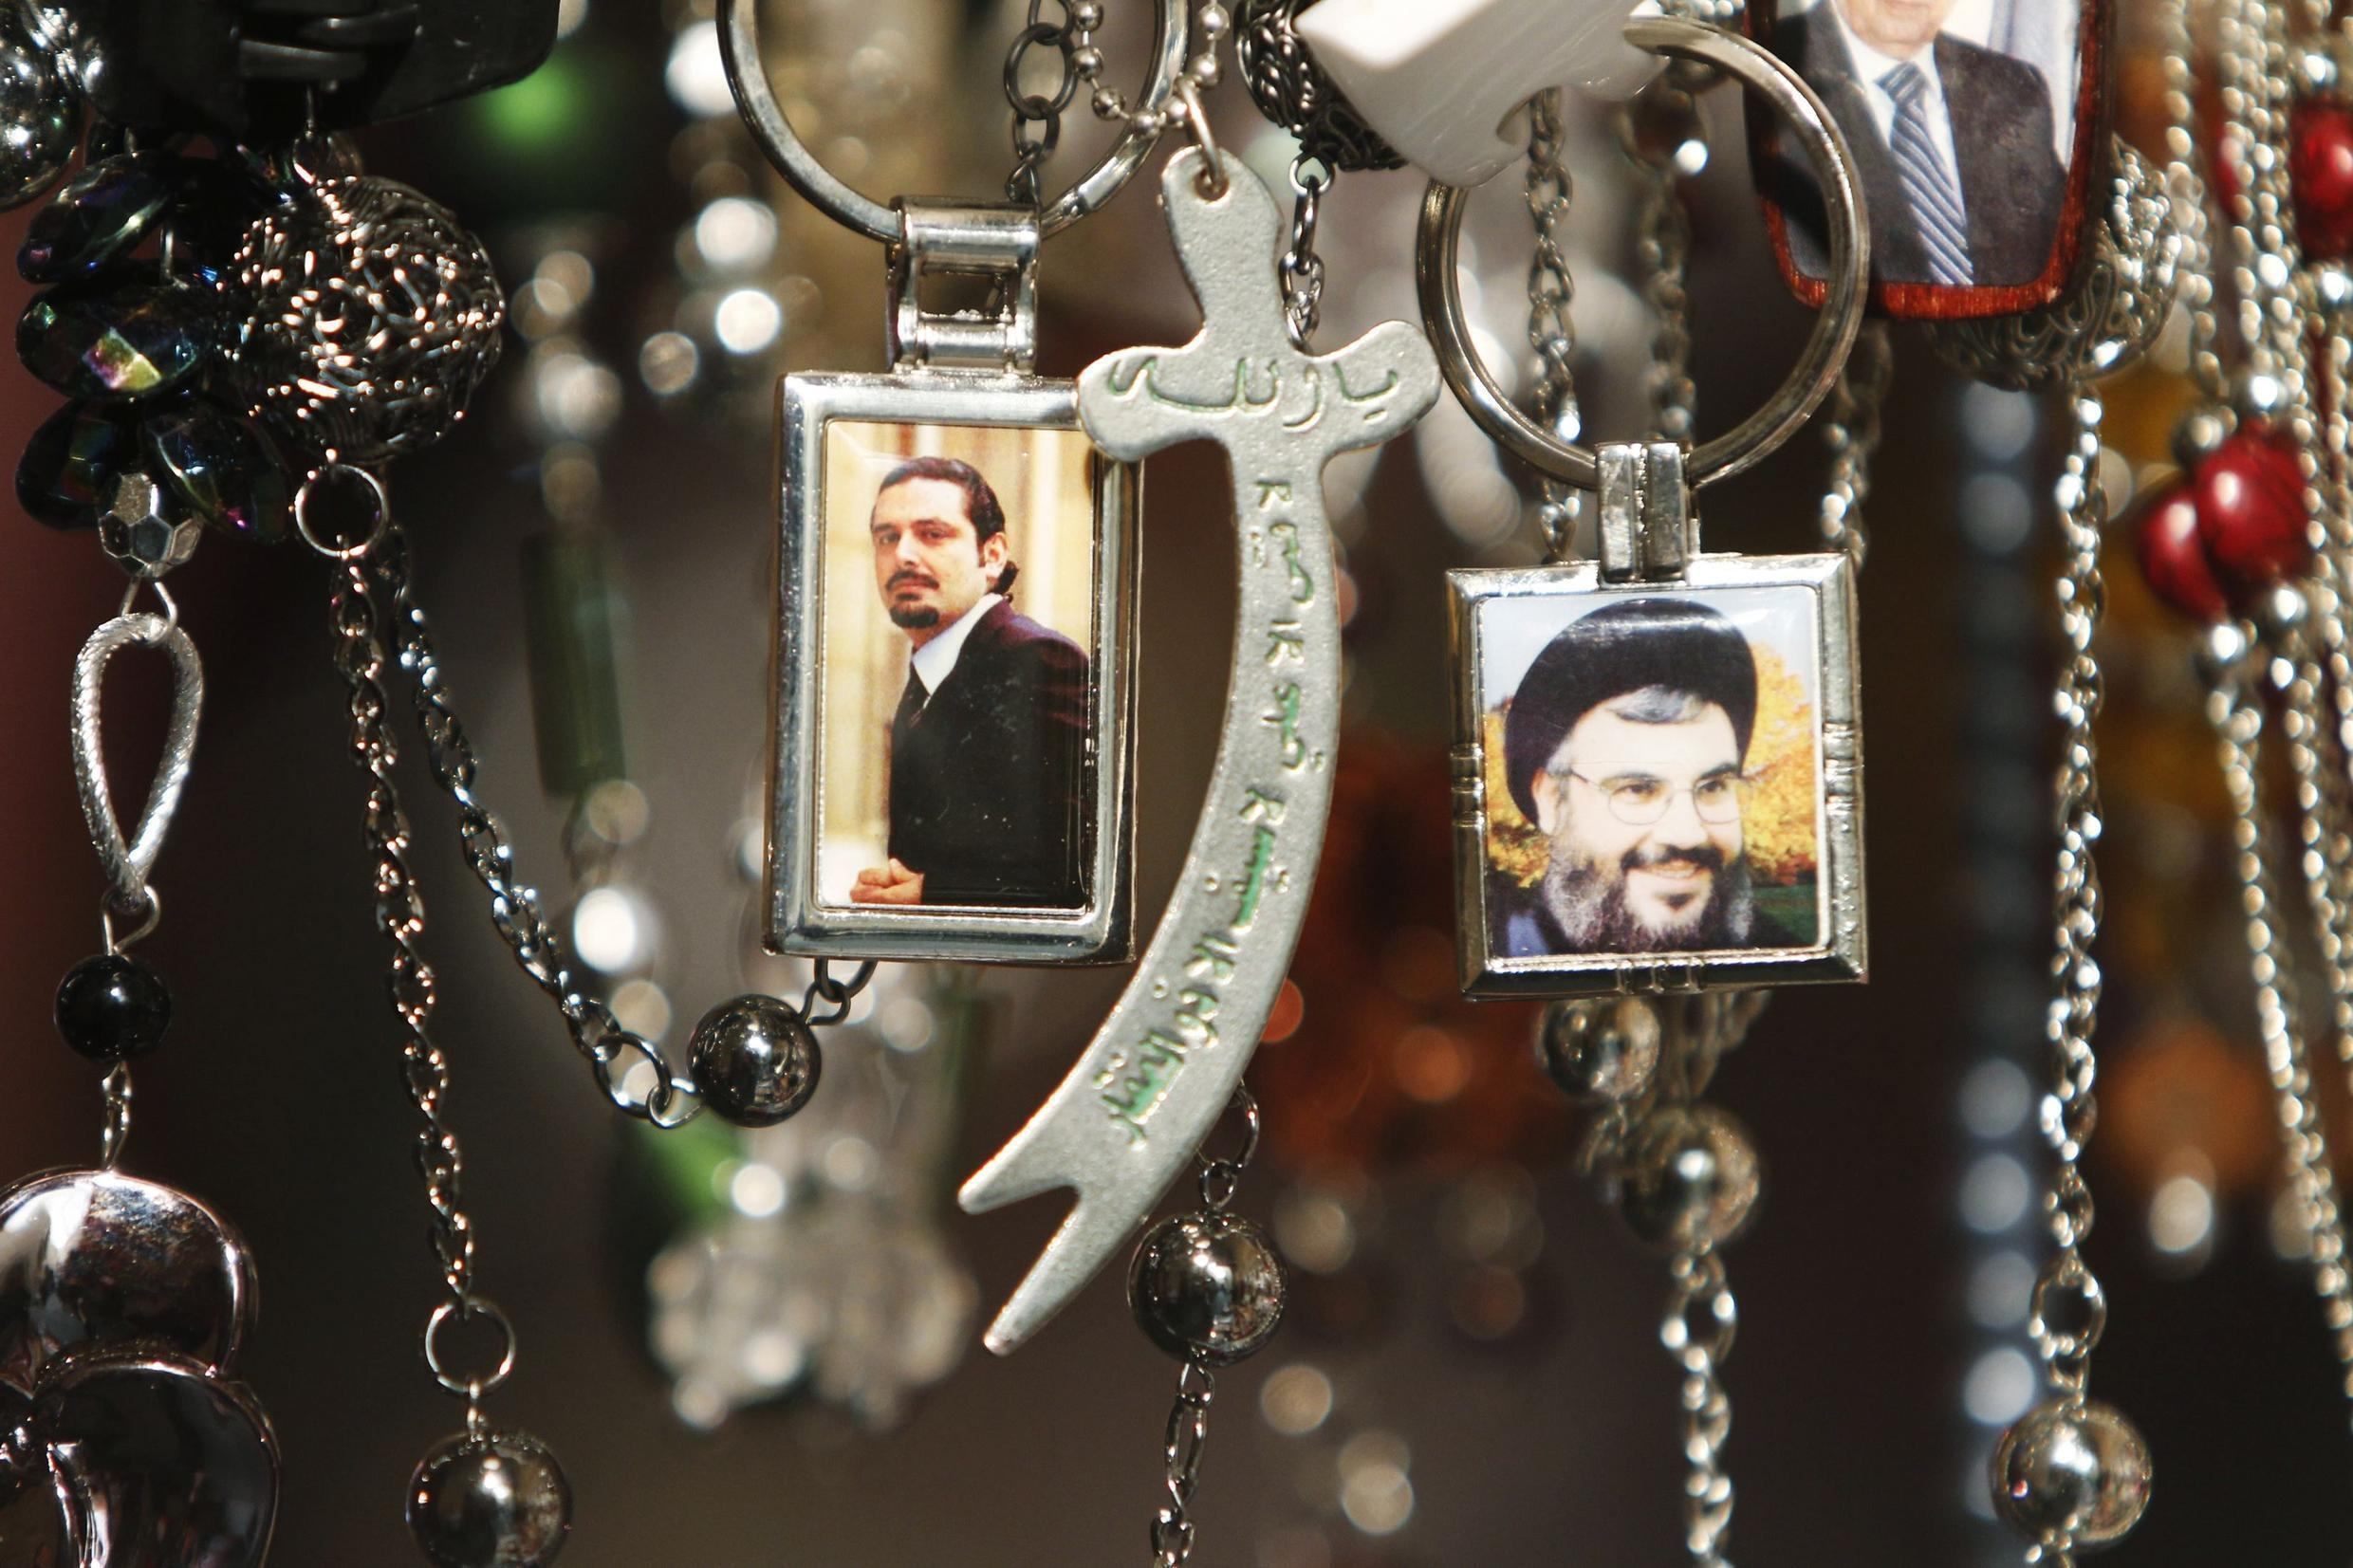 Pictures of Lebanon's Hezbollah leader Nasrallah and Lebanese caretaker Prime Minister al-Hariri are seen on key rings at a gift shop in Sidon